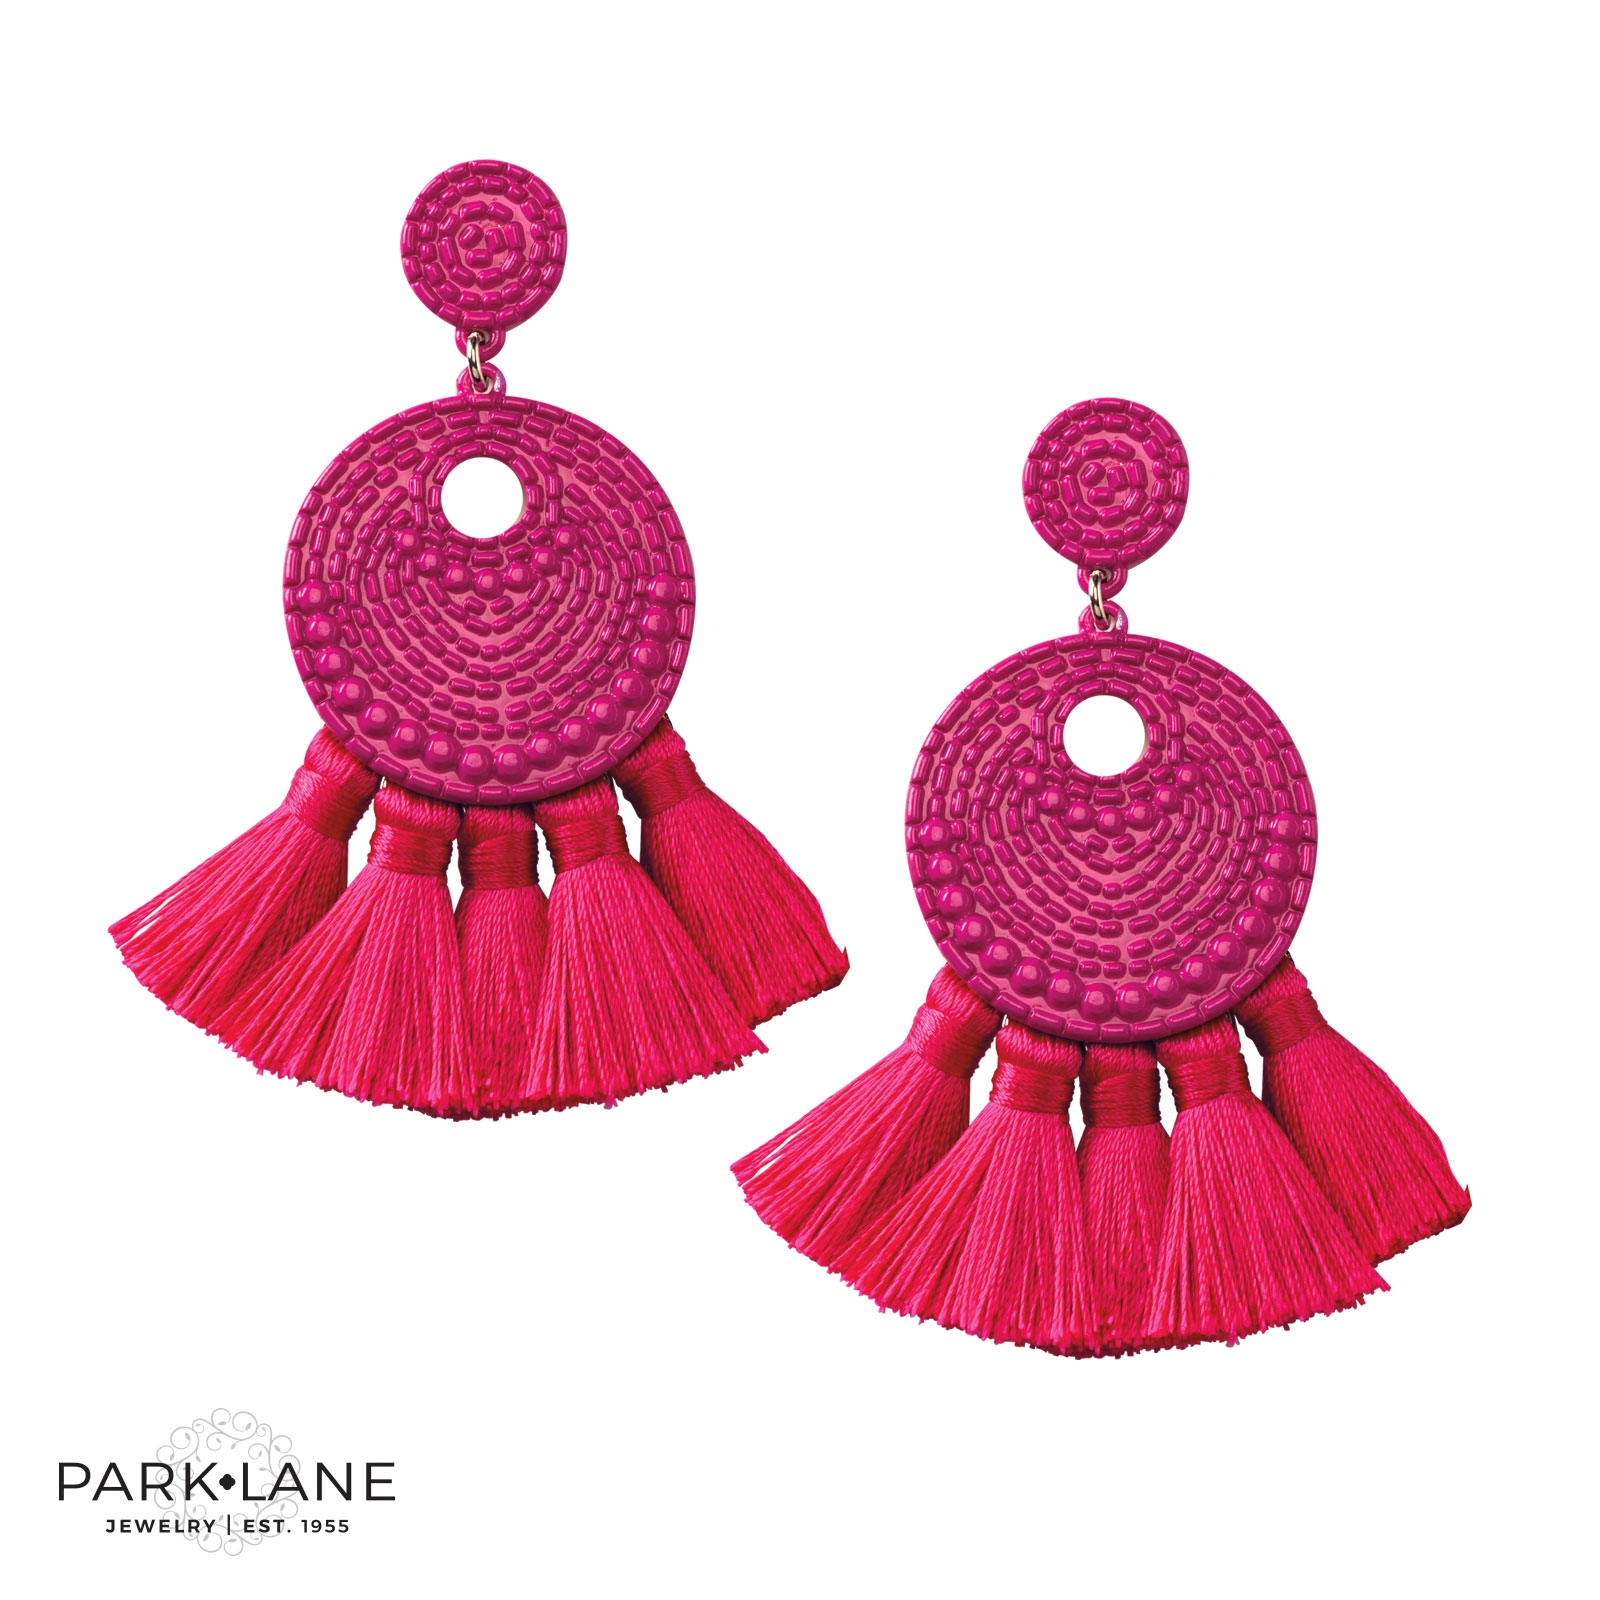 Flamingo Earrings - $18 with $30 purchase